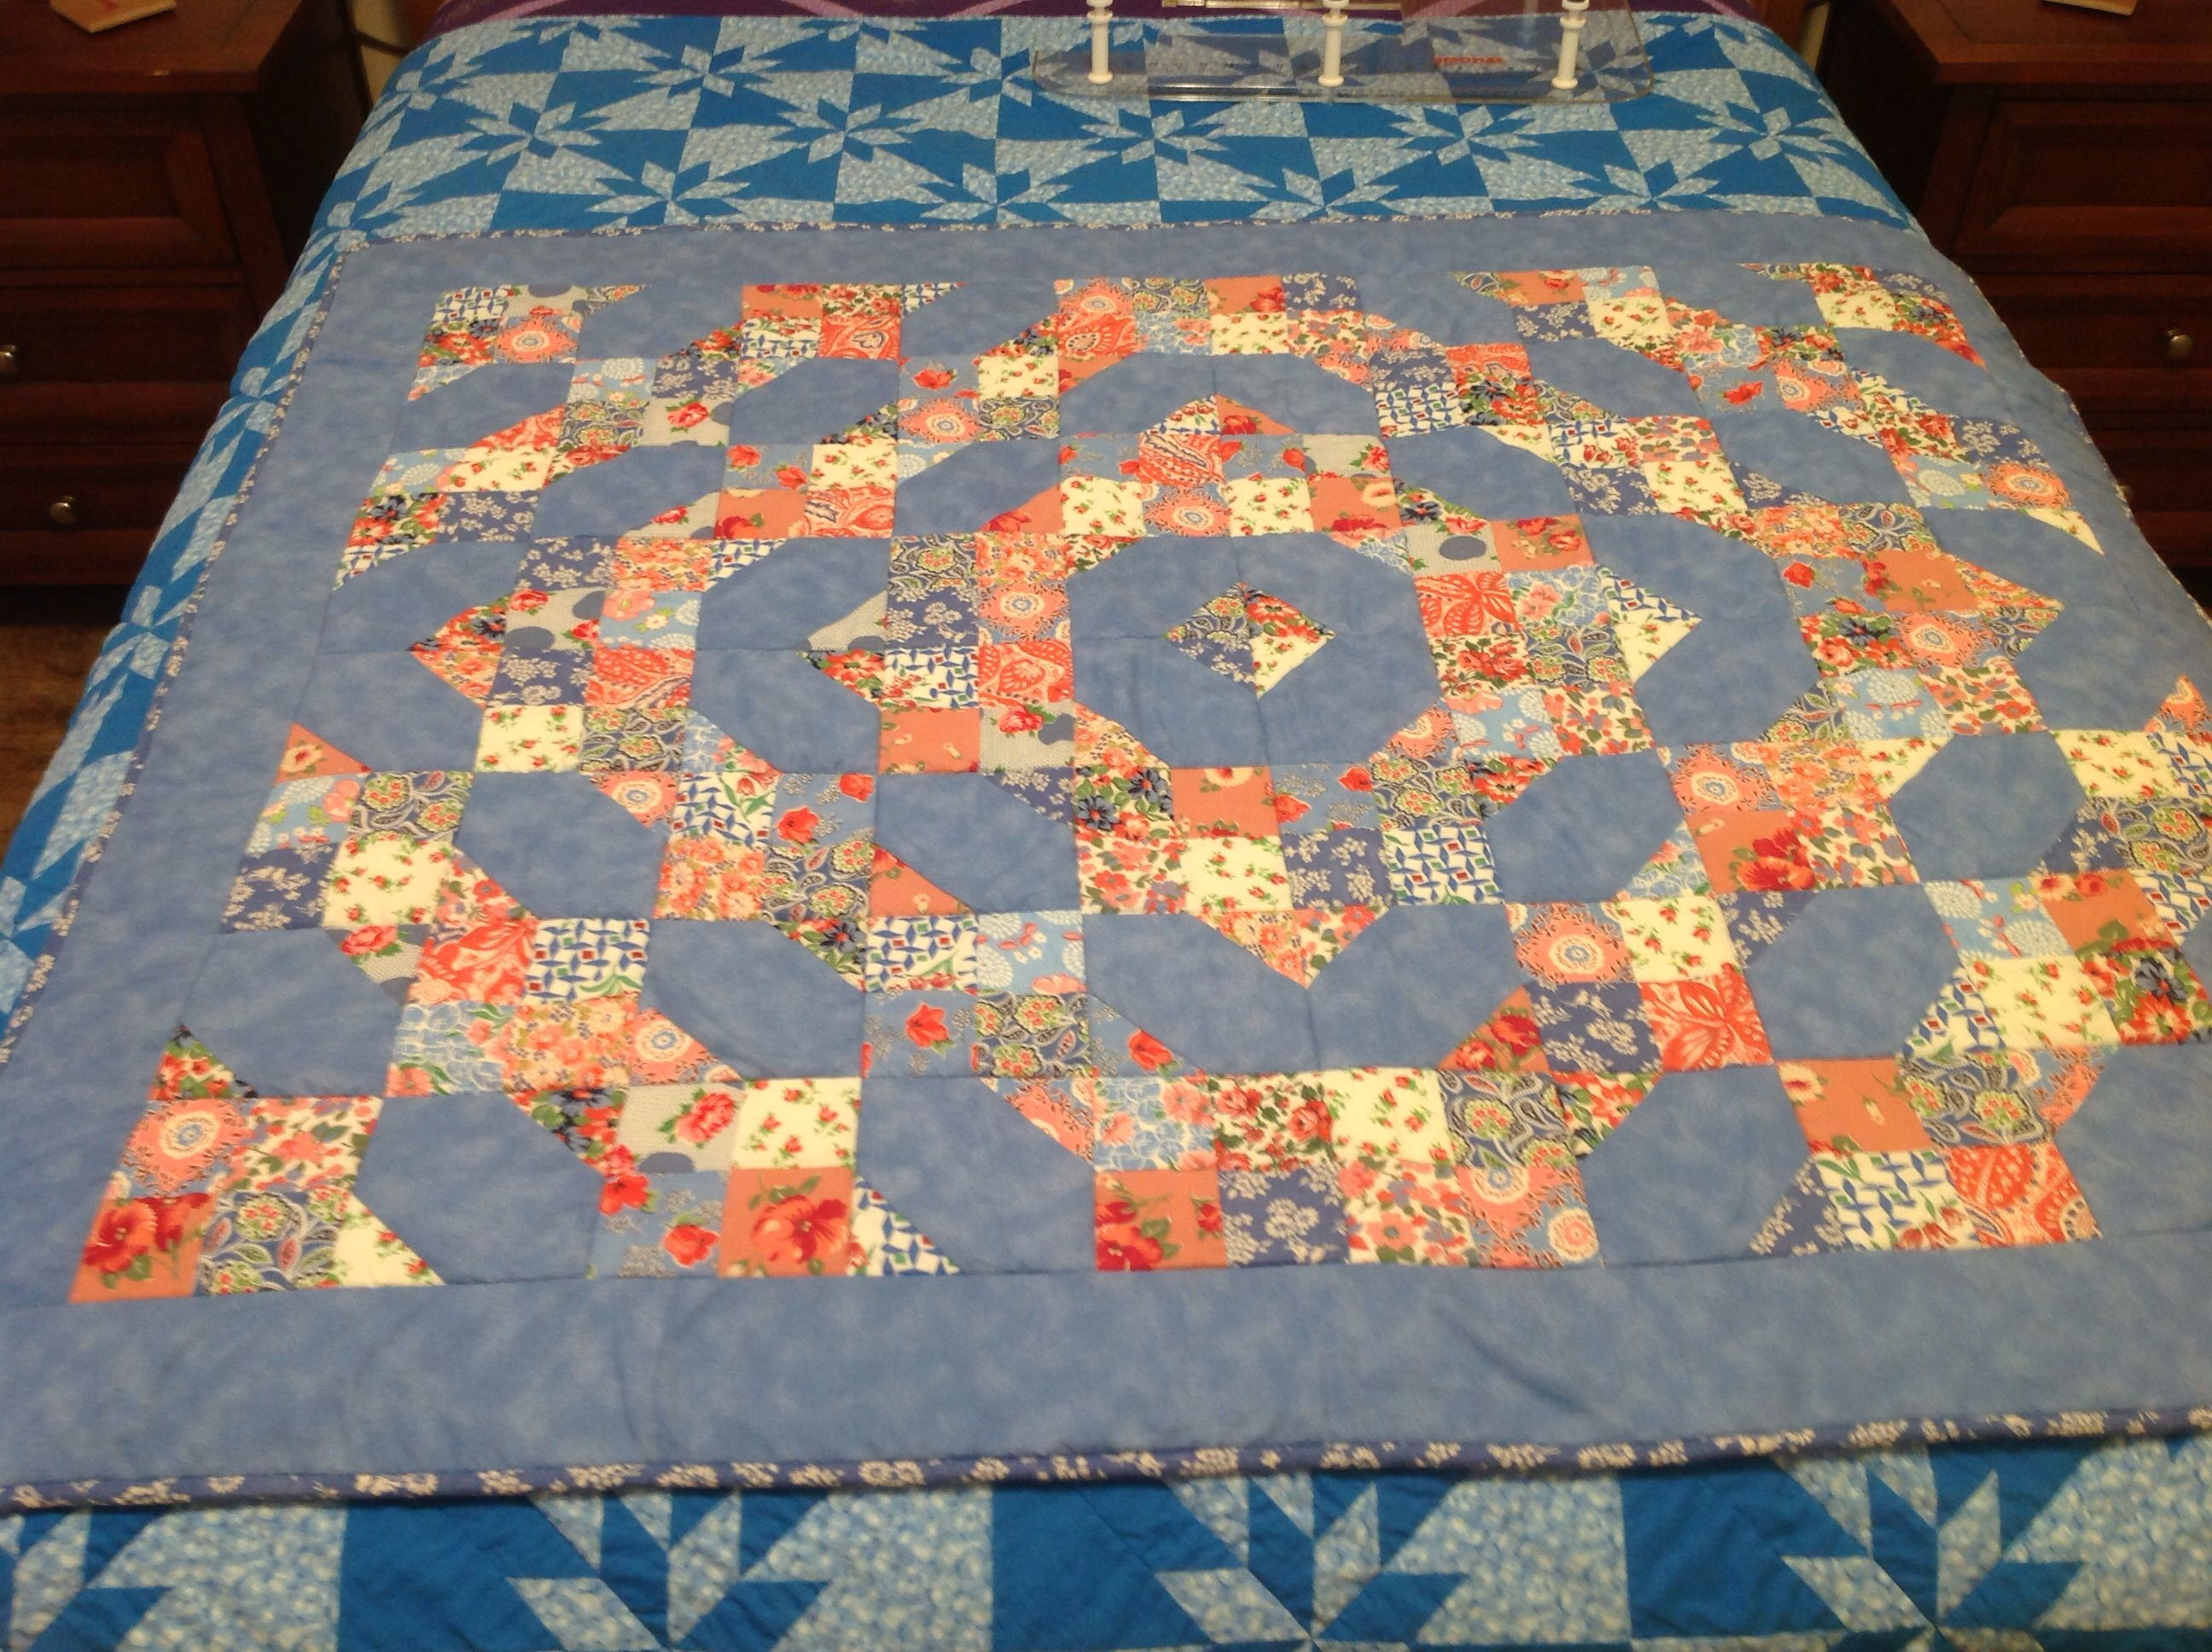 Free pattern called Fresh Tradition. Seen on Quilting Board.